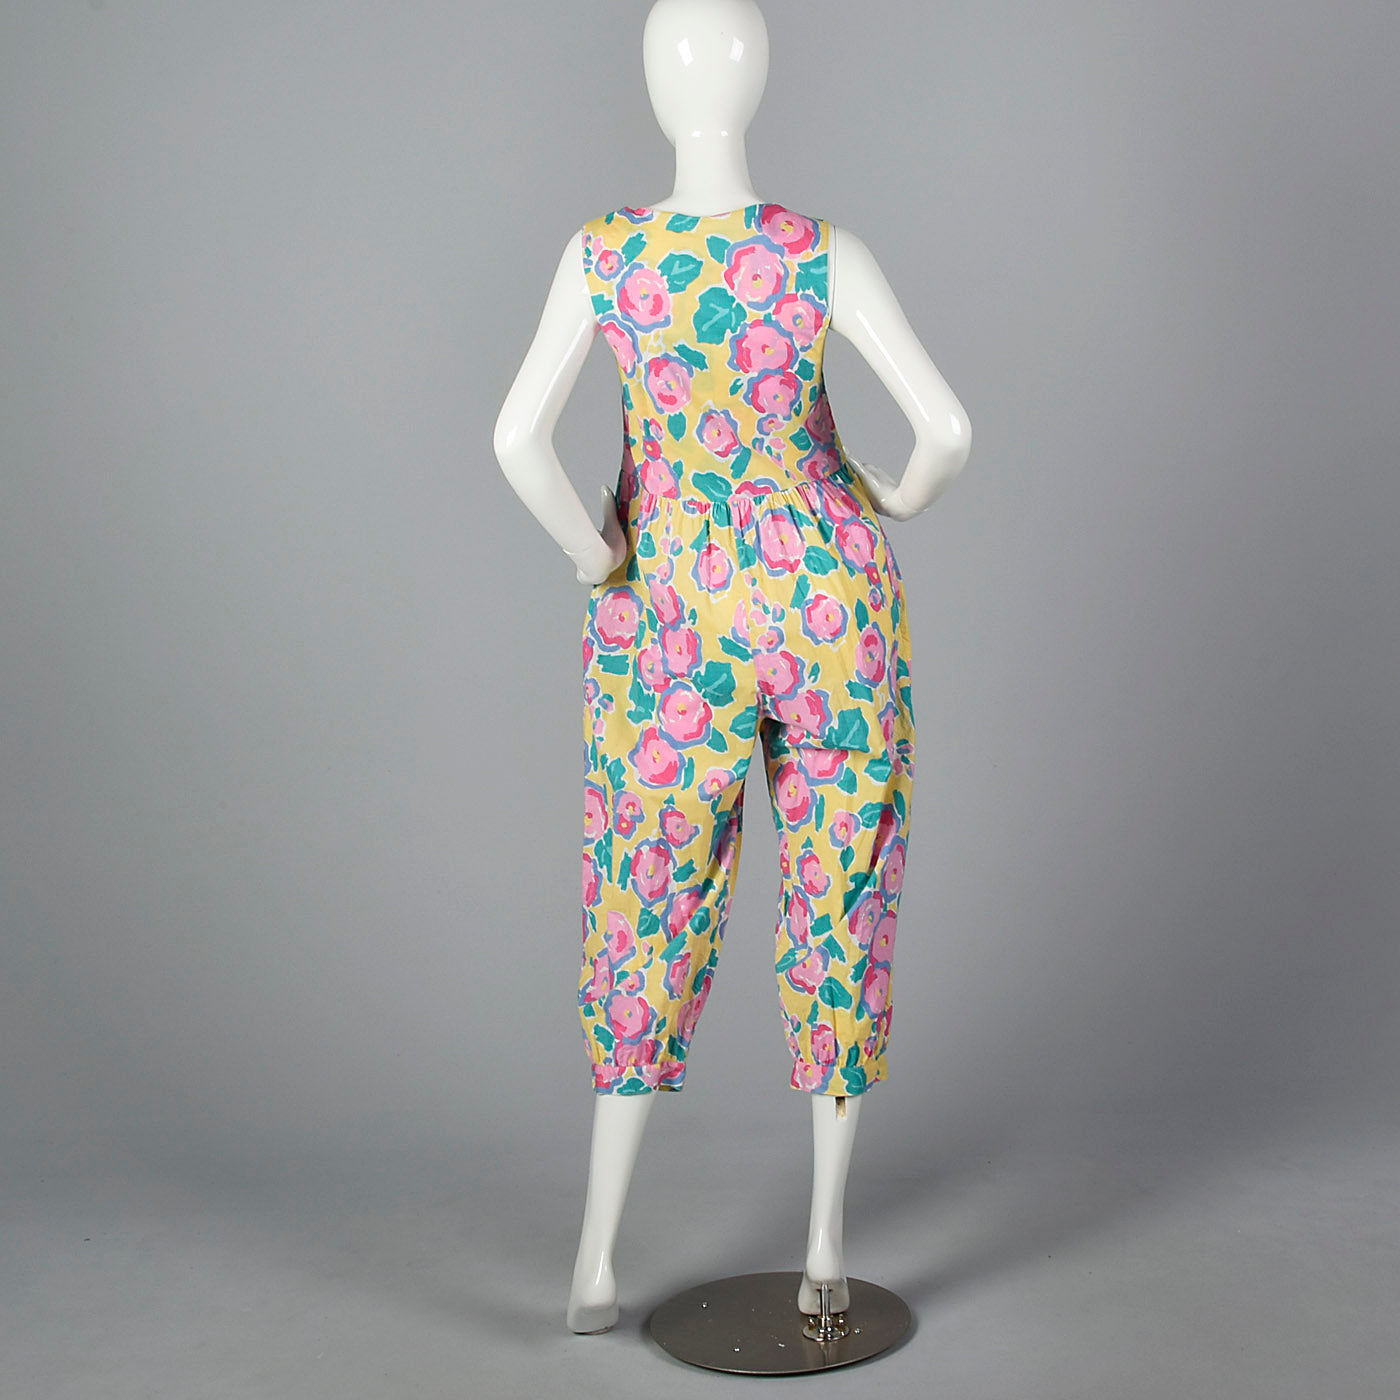 1980s Yellow Jumpsuit with a Bright Floral Print